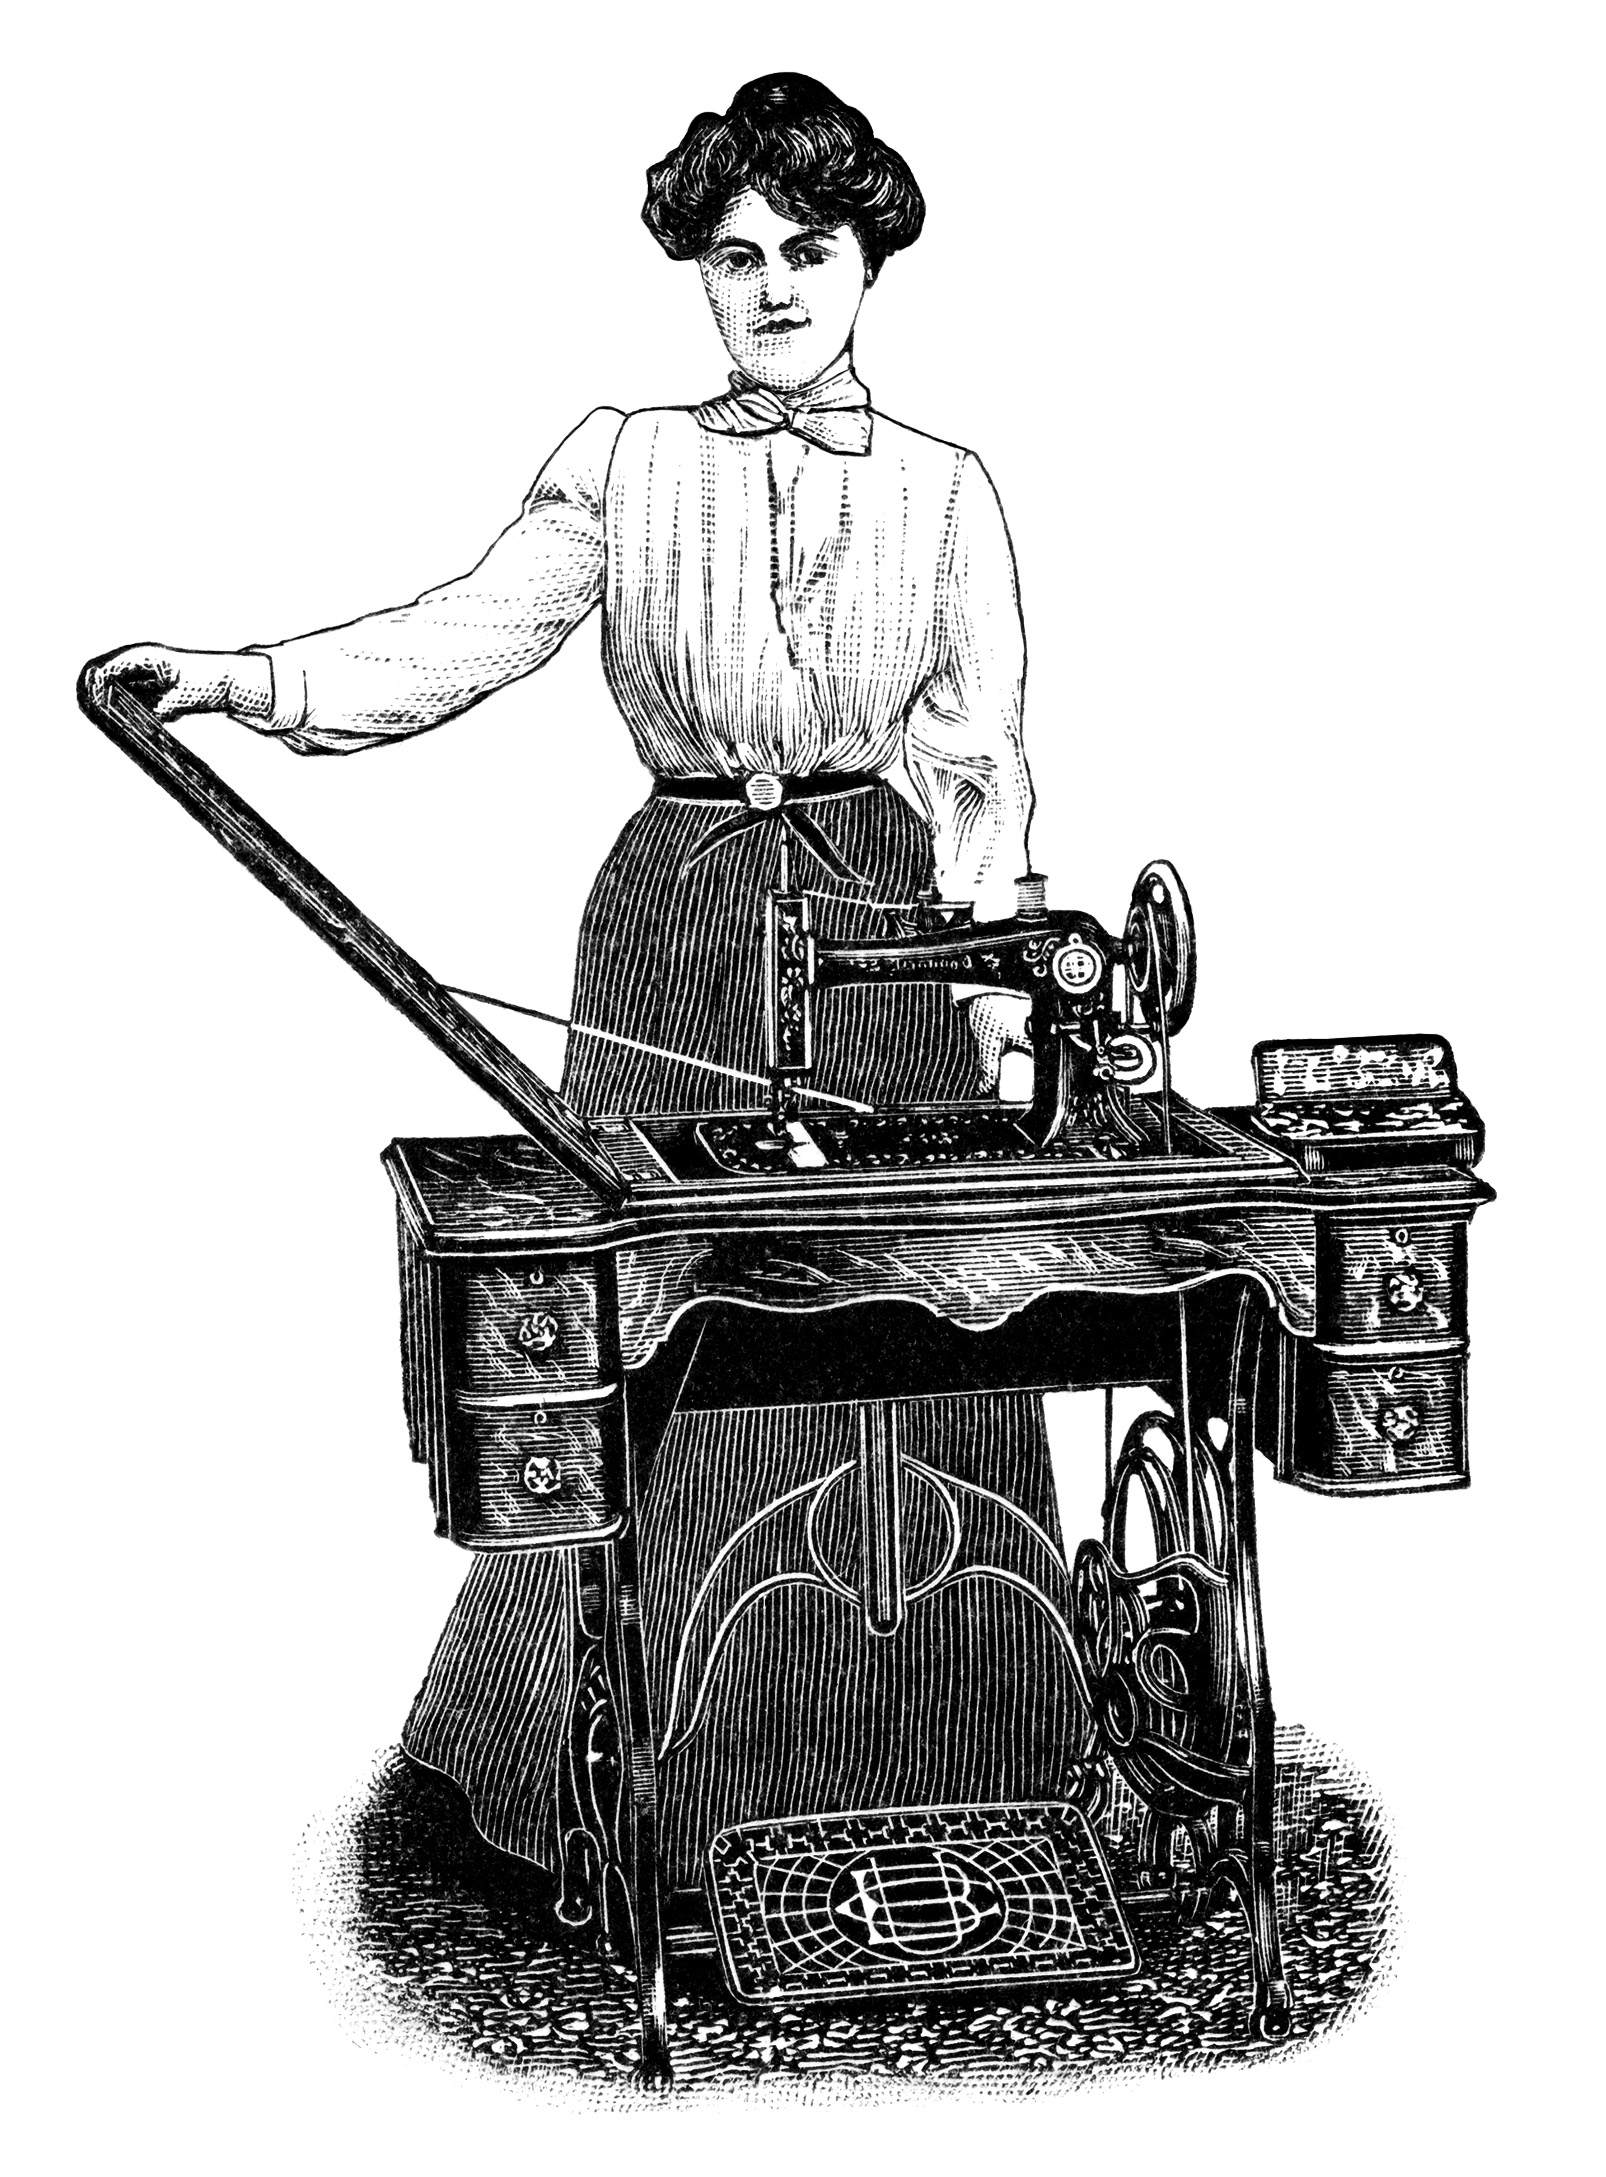 vintage sewing clipart, old sewing machine advertisement, black and white clip art, antique kenwood sewing machine, woman sewing image